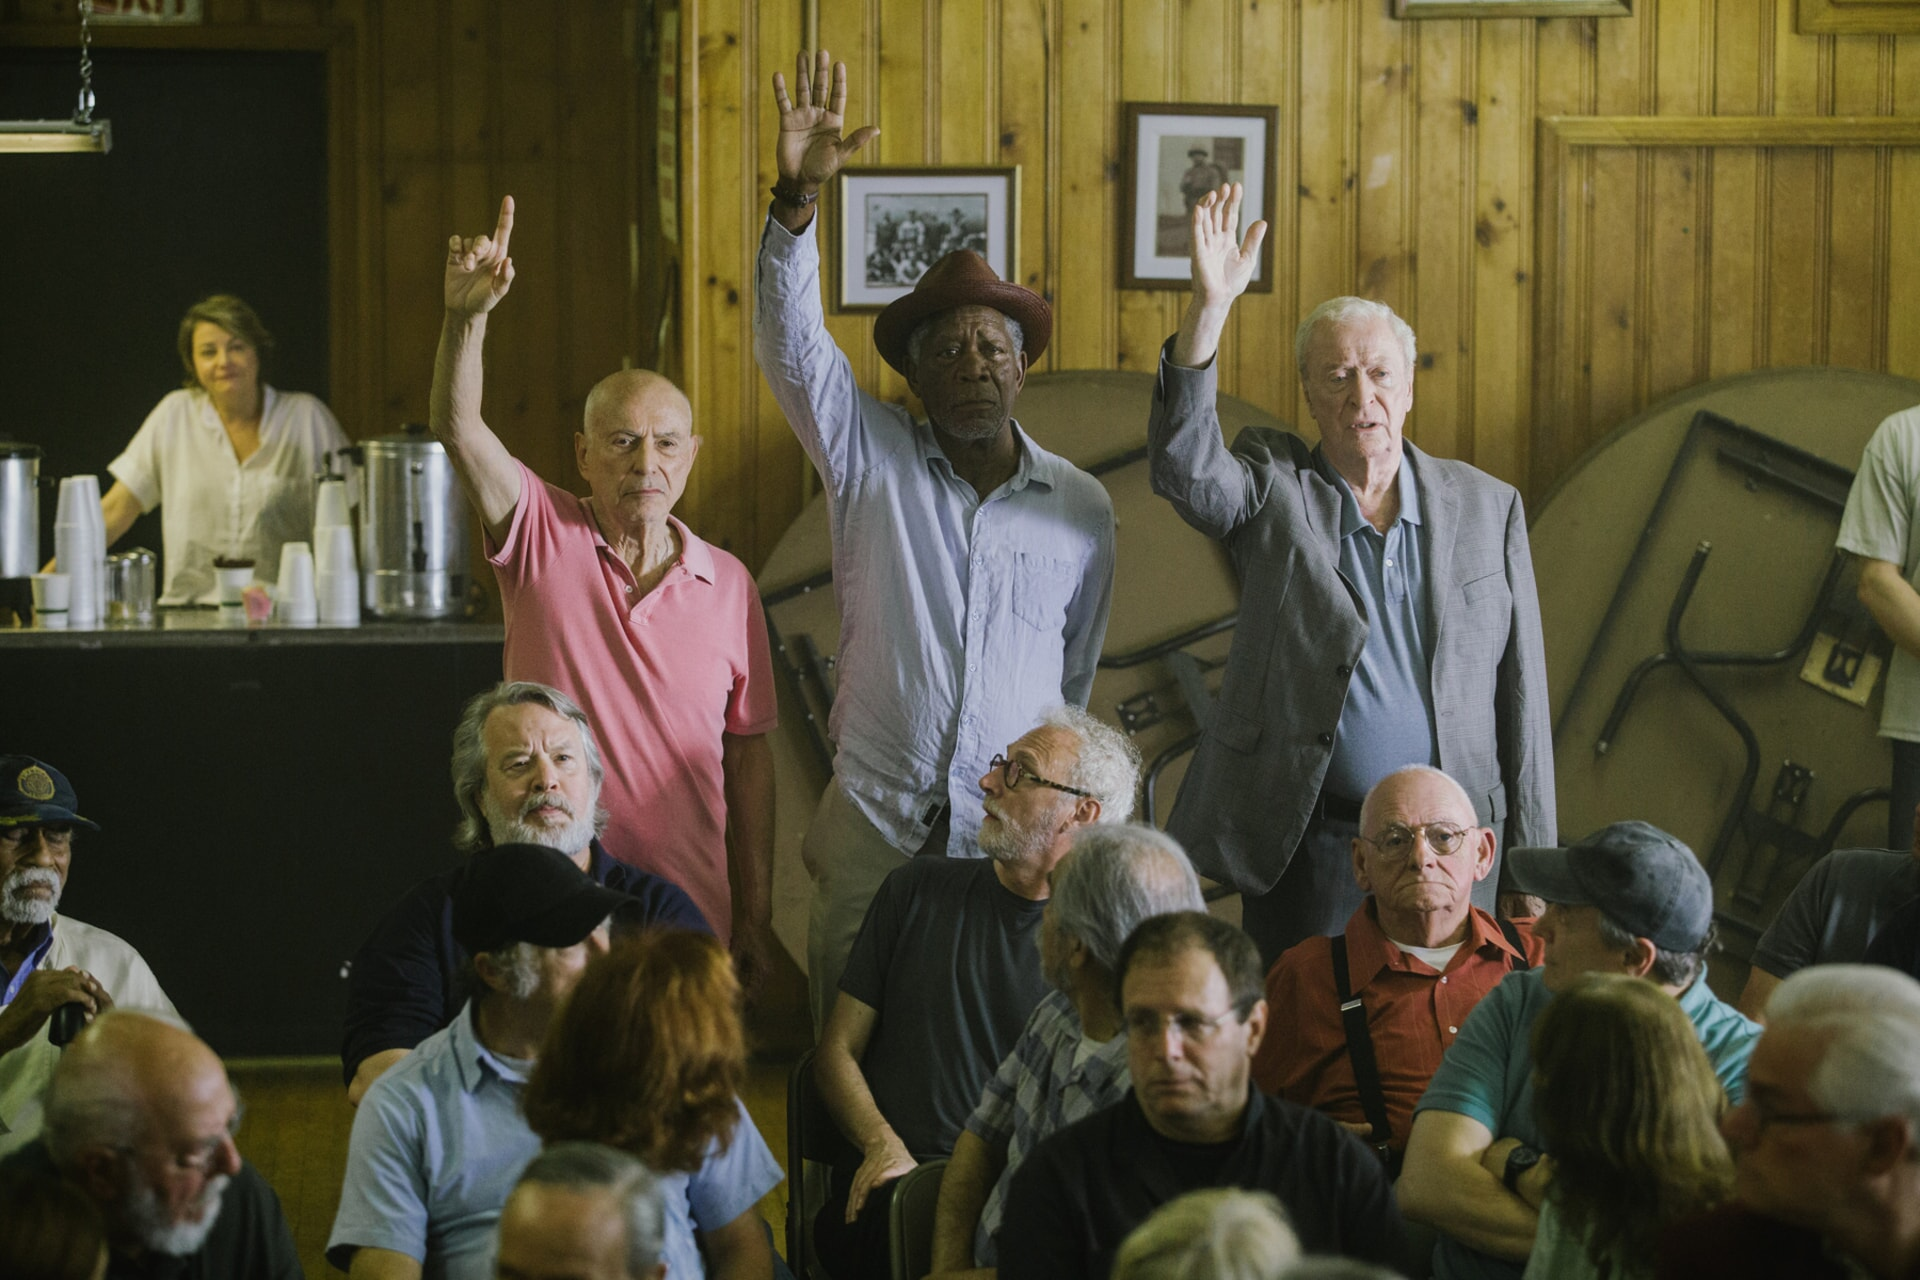 """ALAN ARKIN as Albert Garner, MORGAN FREEMAN as Willie Davis and MICHAEL CAINE as Joe Harding in the New Line Cinema and Village Roadshow comedy """"GOING IN STYLE,"""" a Warner Bros. Pictures release."""